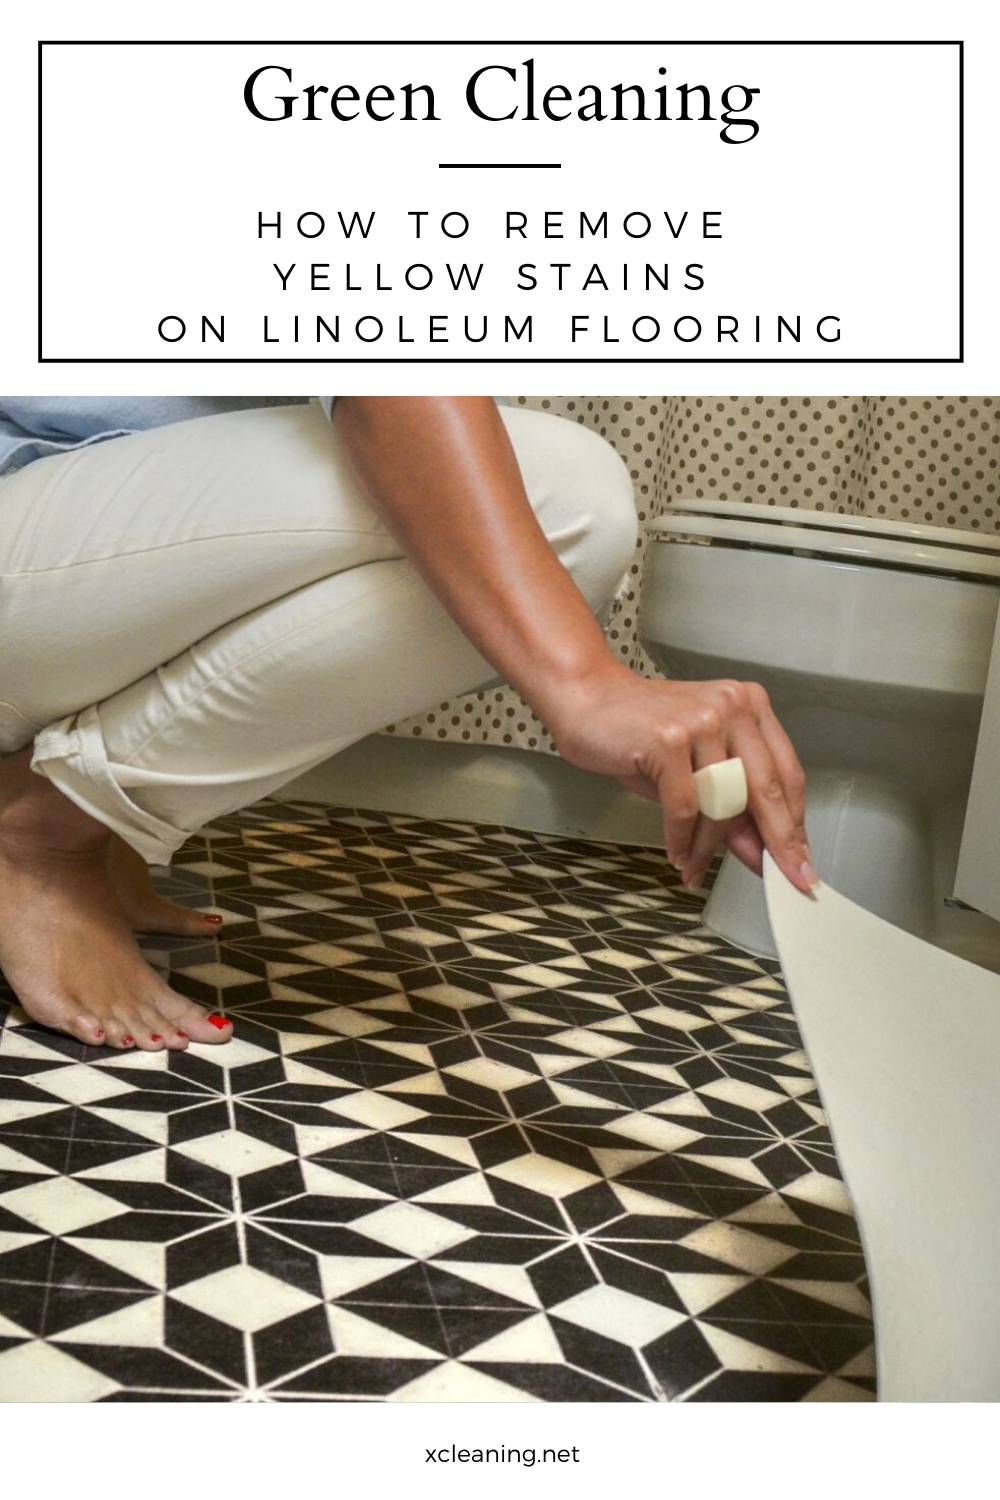 Green Cleaning: How To Remove Yellow Stains On Linoleum Flooring In 2020 | Linoleum Flooring, Remove Yellow Stains, Green Cleaning